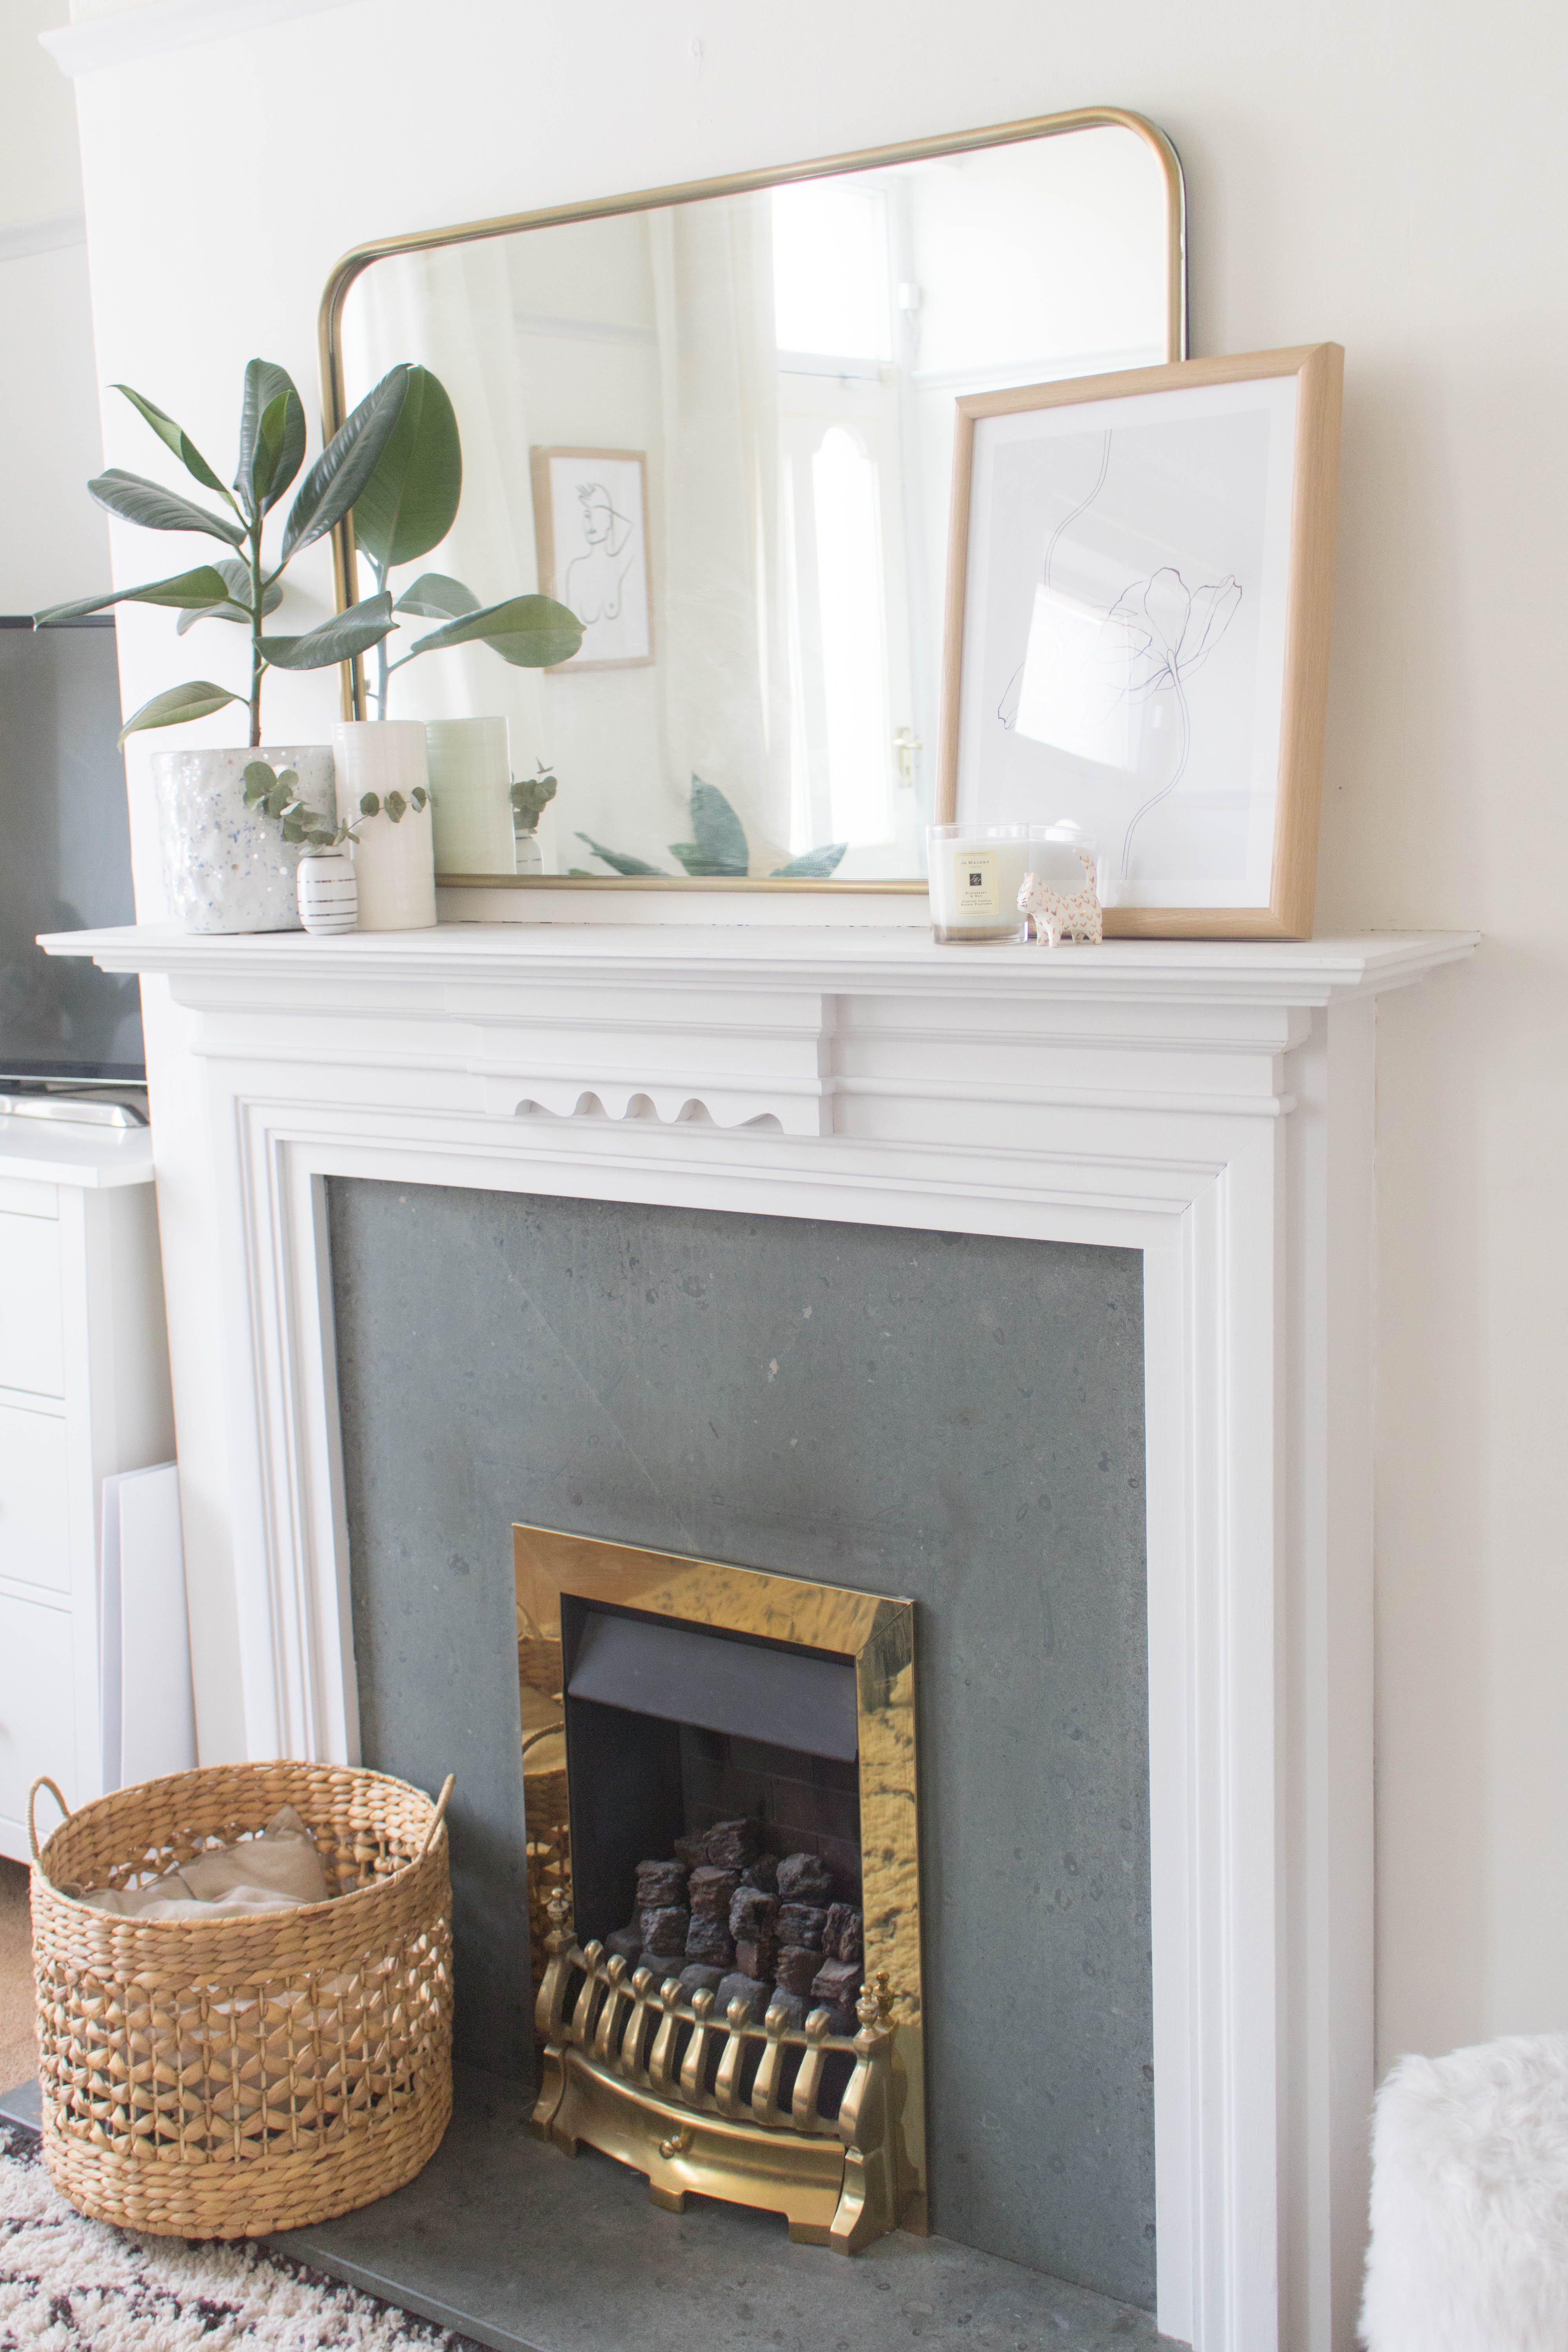 Styling a Fireplace Three Ways